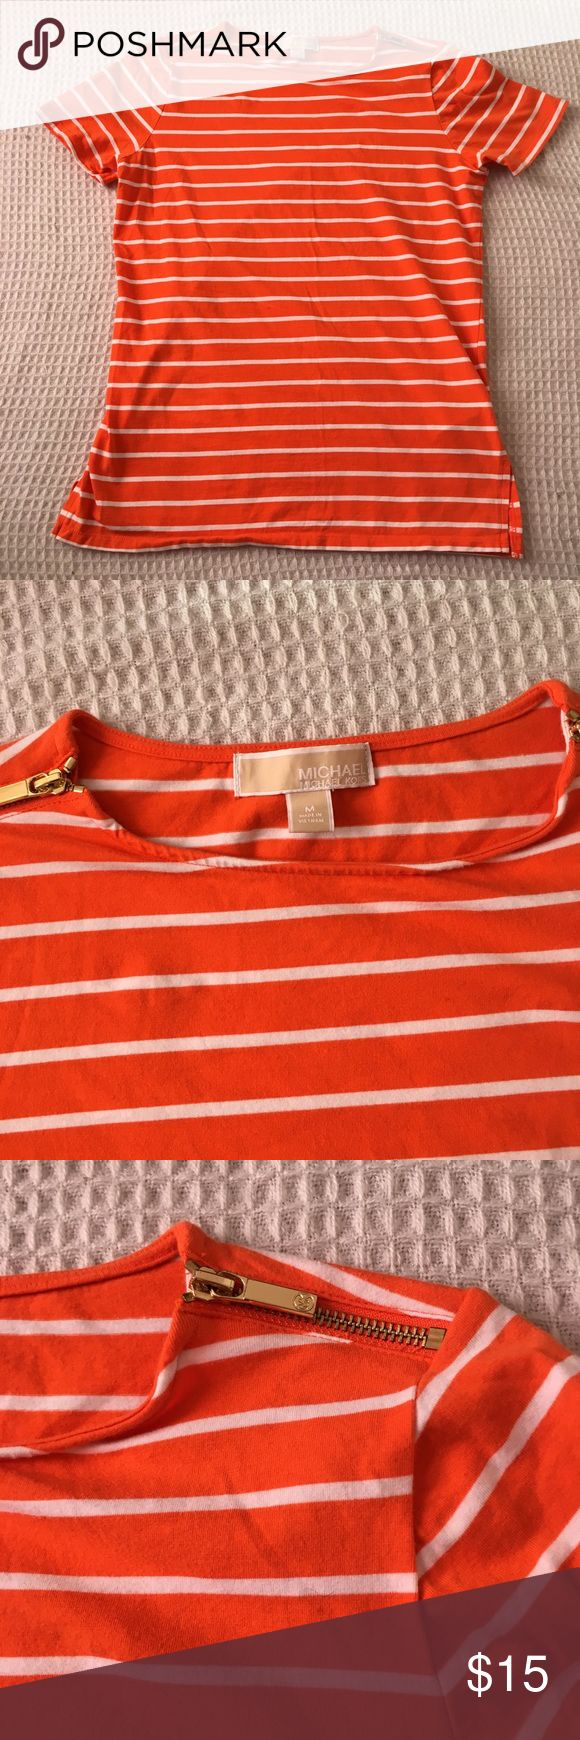 Michael Kors striped t-shirt with shoulder zips M Excellent condition  Shows minimal wear  No tears or stains  From a pet and smoke free home MICHAEL Michael Kors Tops Tees - Short Sleeve